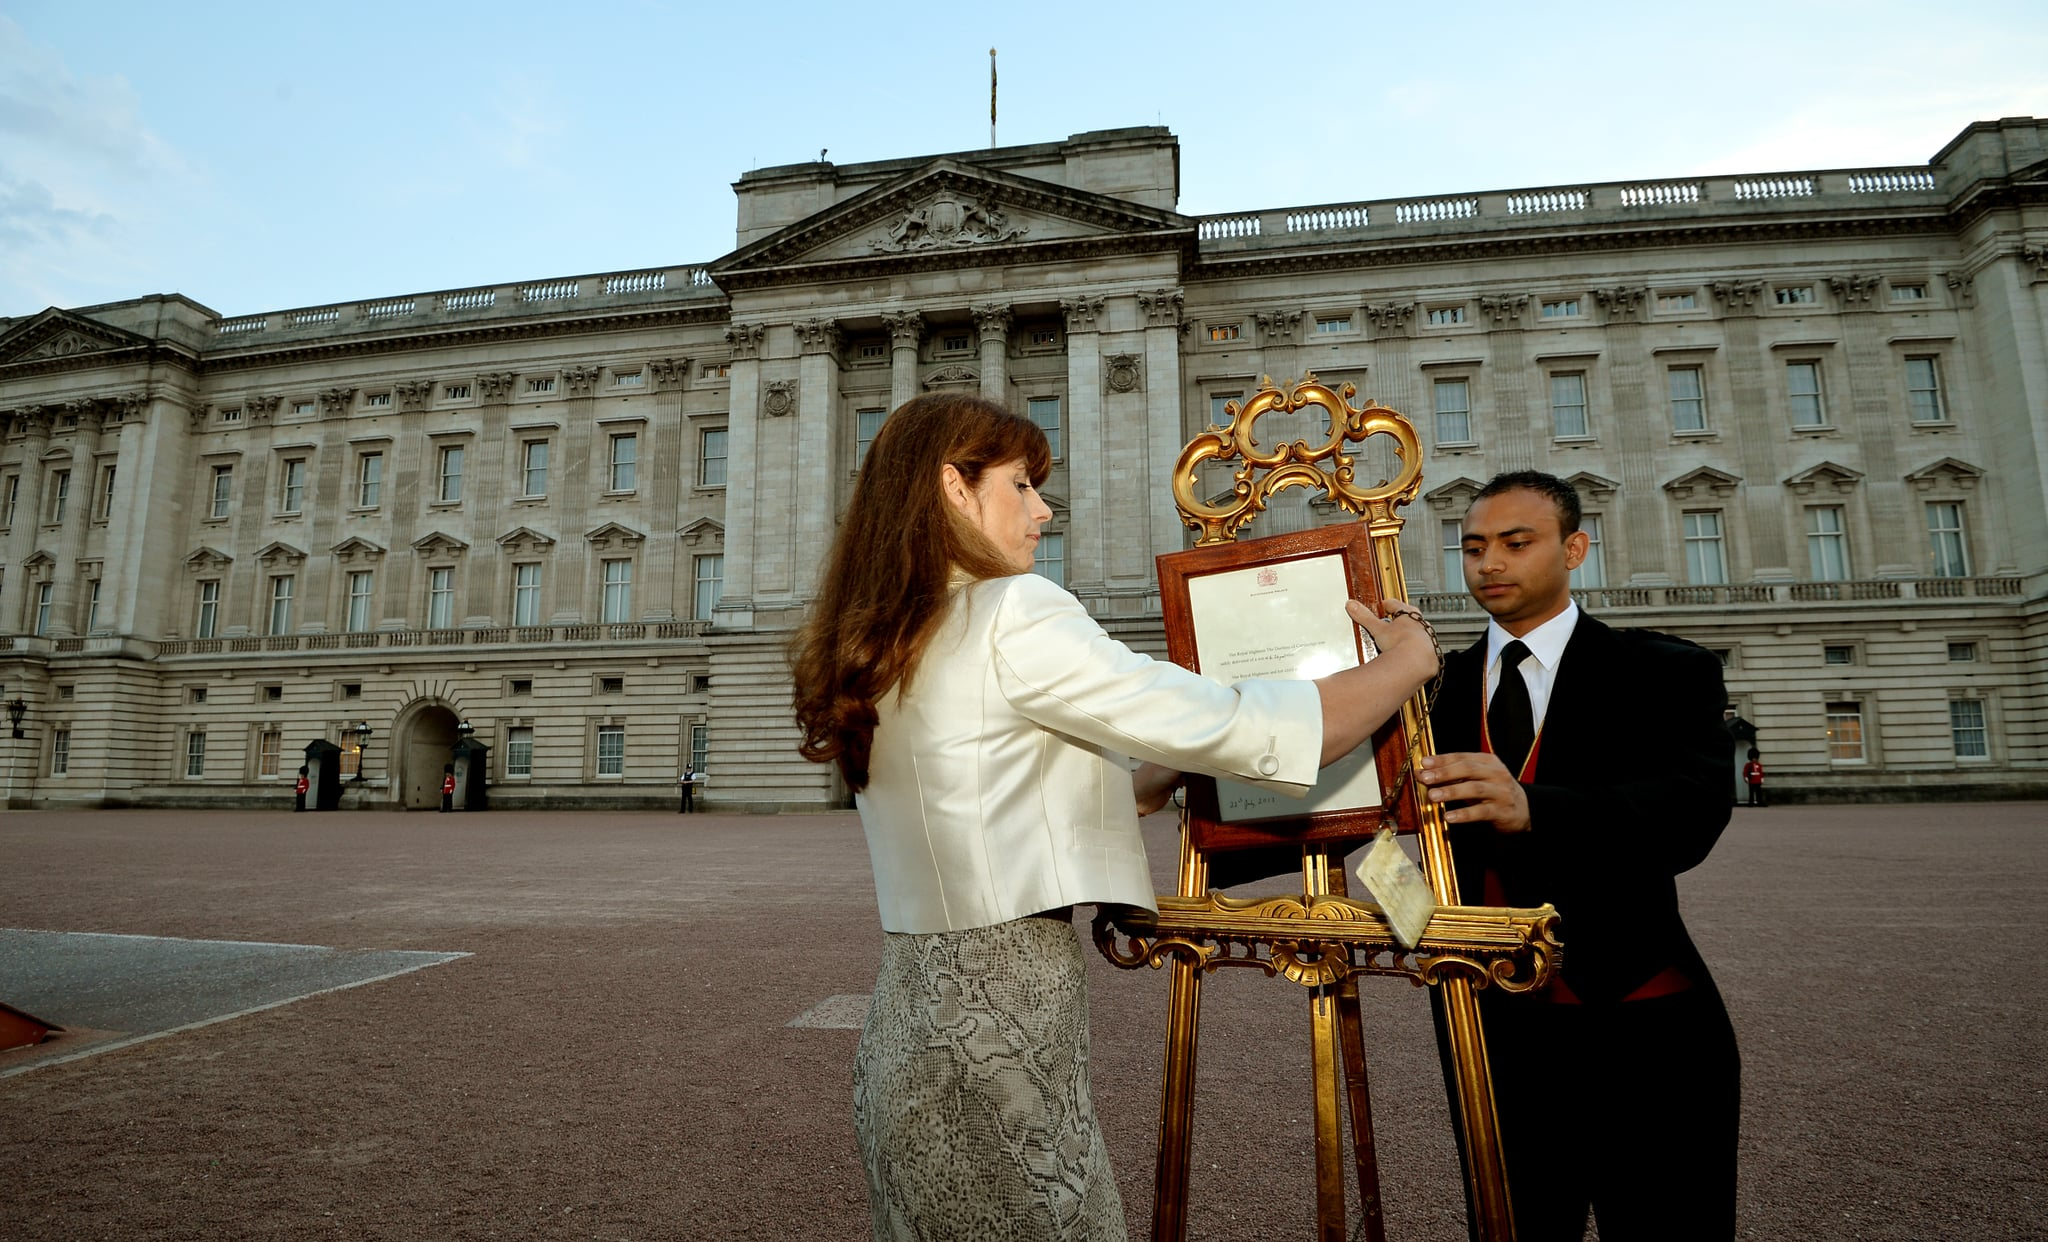 The official bulletin was posted outside Buckingham Palace on an easel.